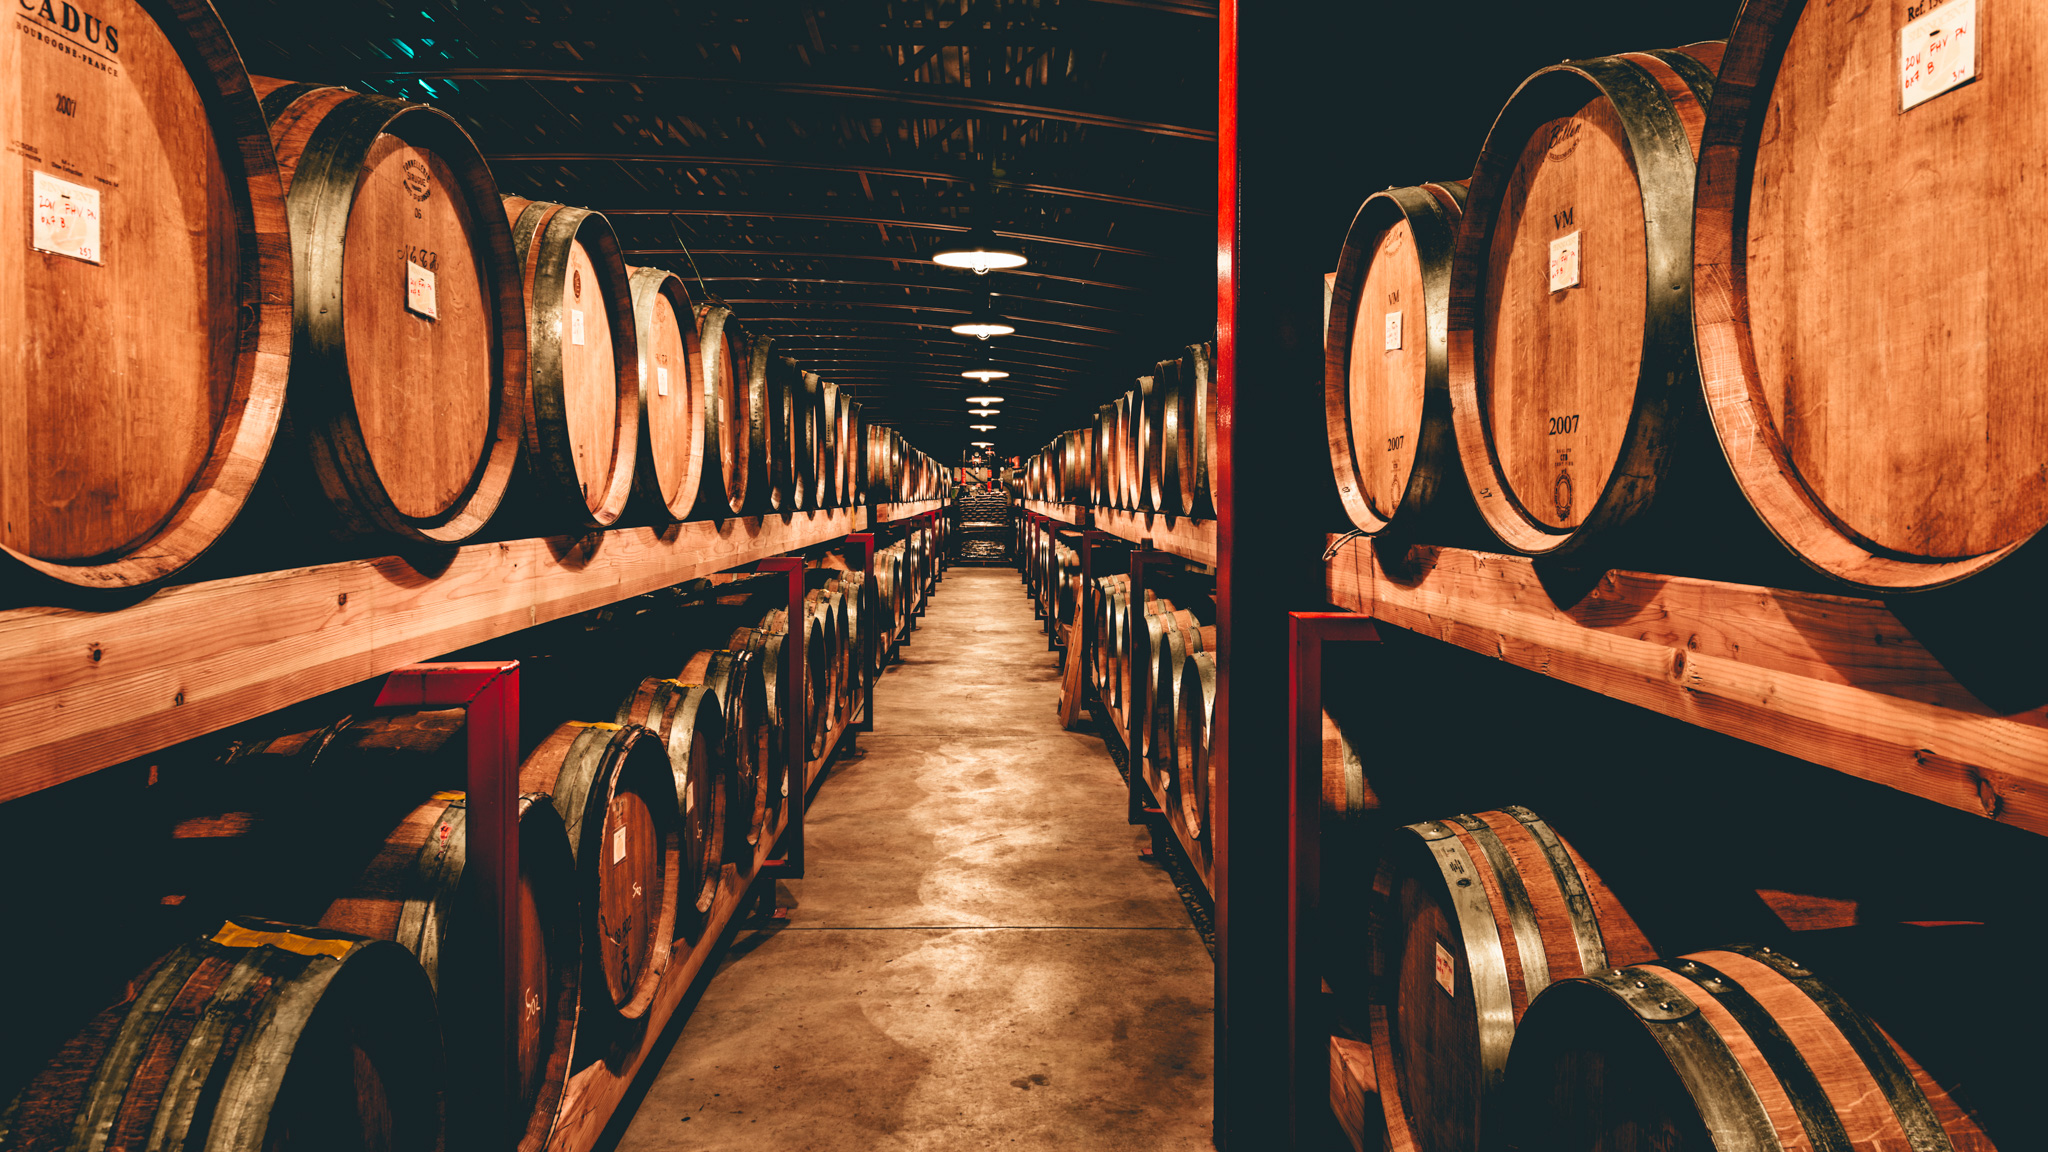 US : Oregon : Barrels at St. Innocent's winery in the Eola-Amity Hills AVA